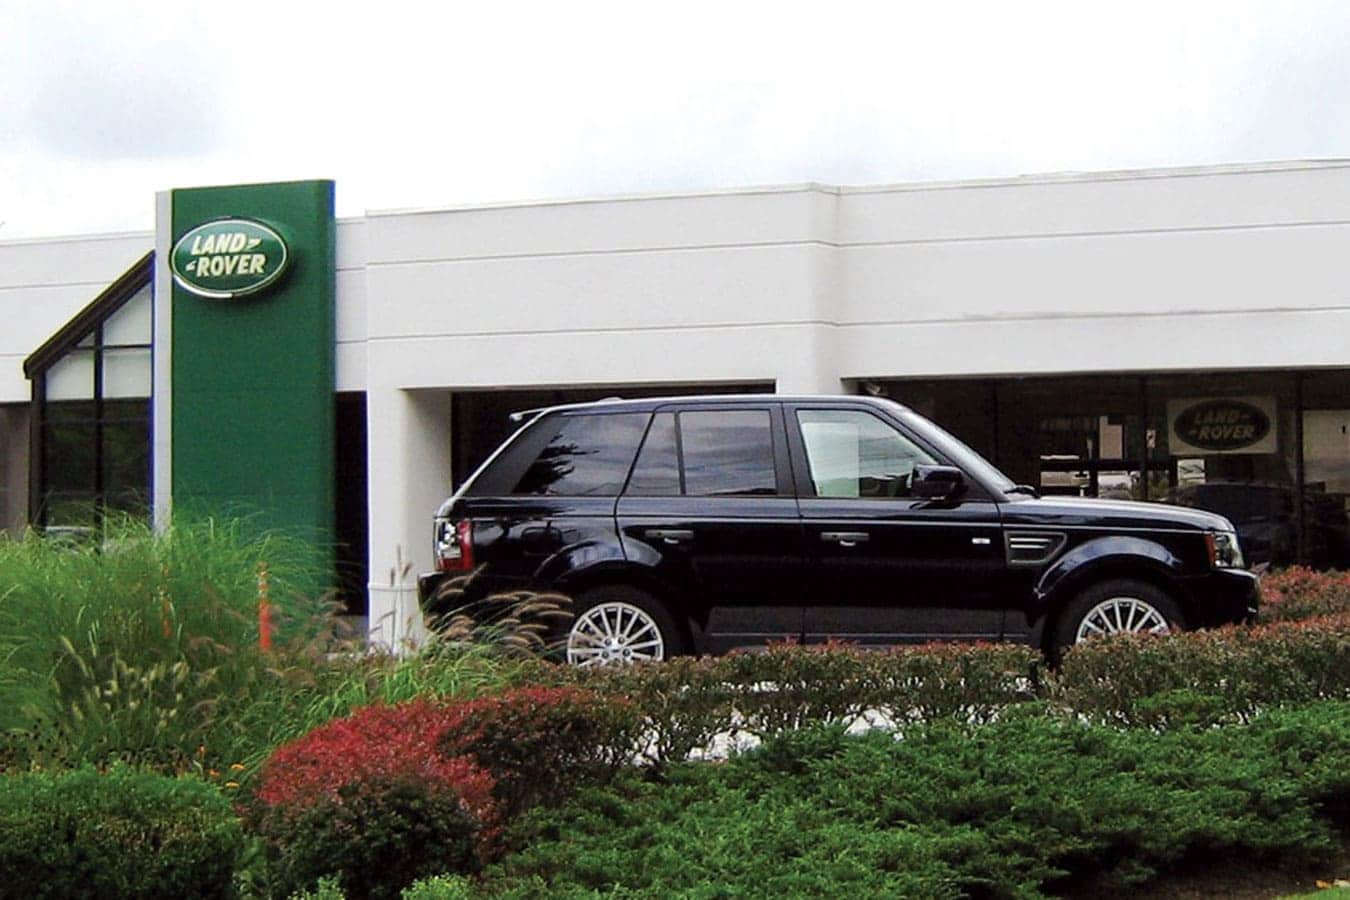 Land Rover Mt Kisco Dealership exterior shot during the day